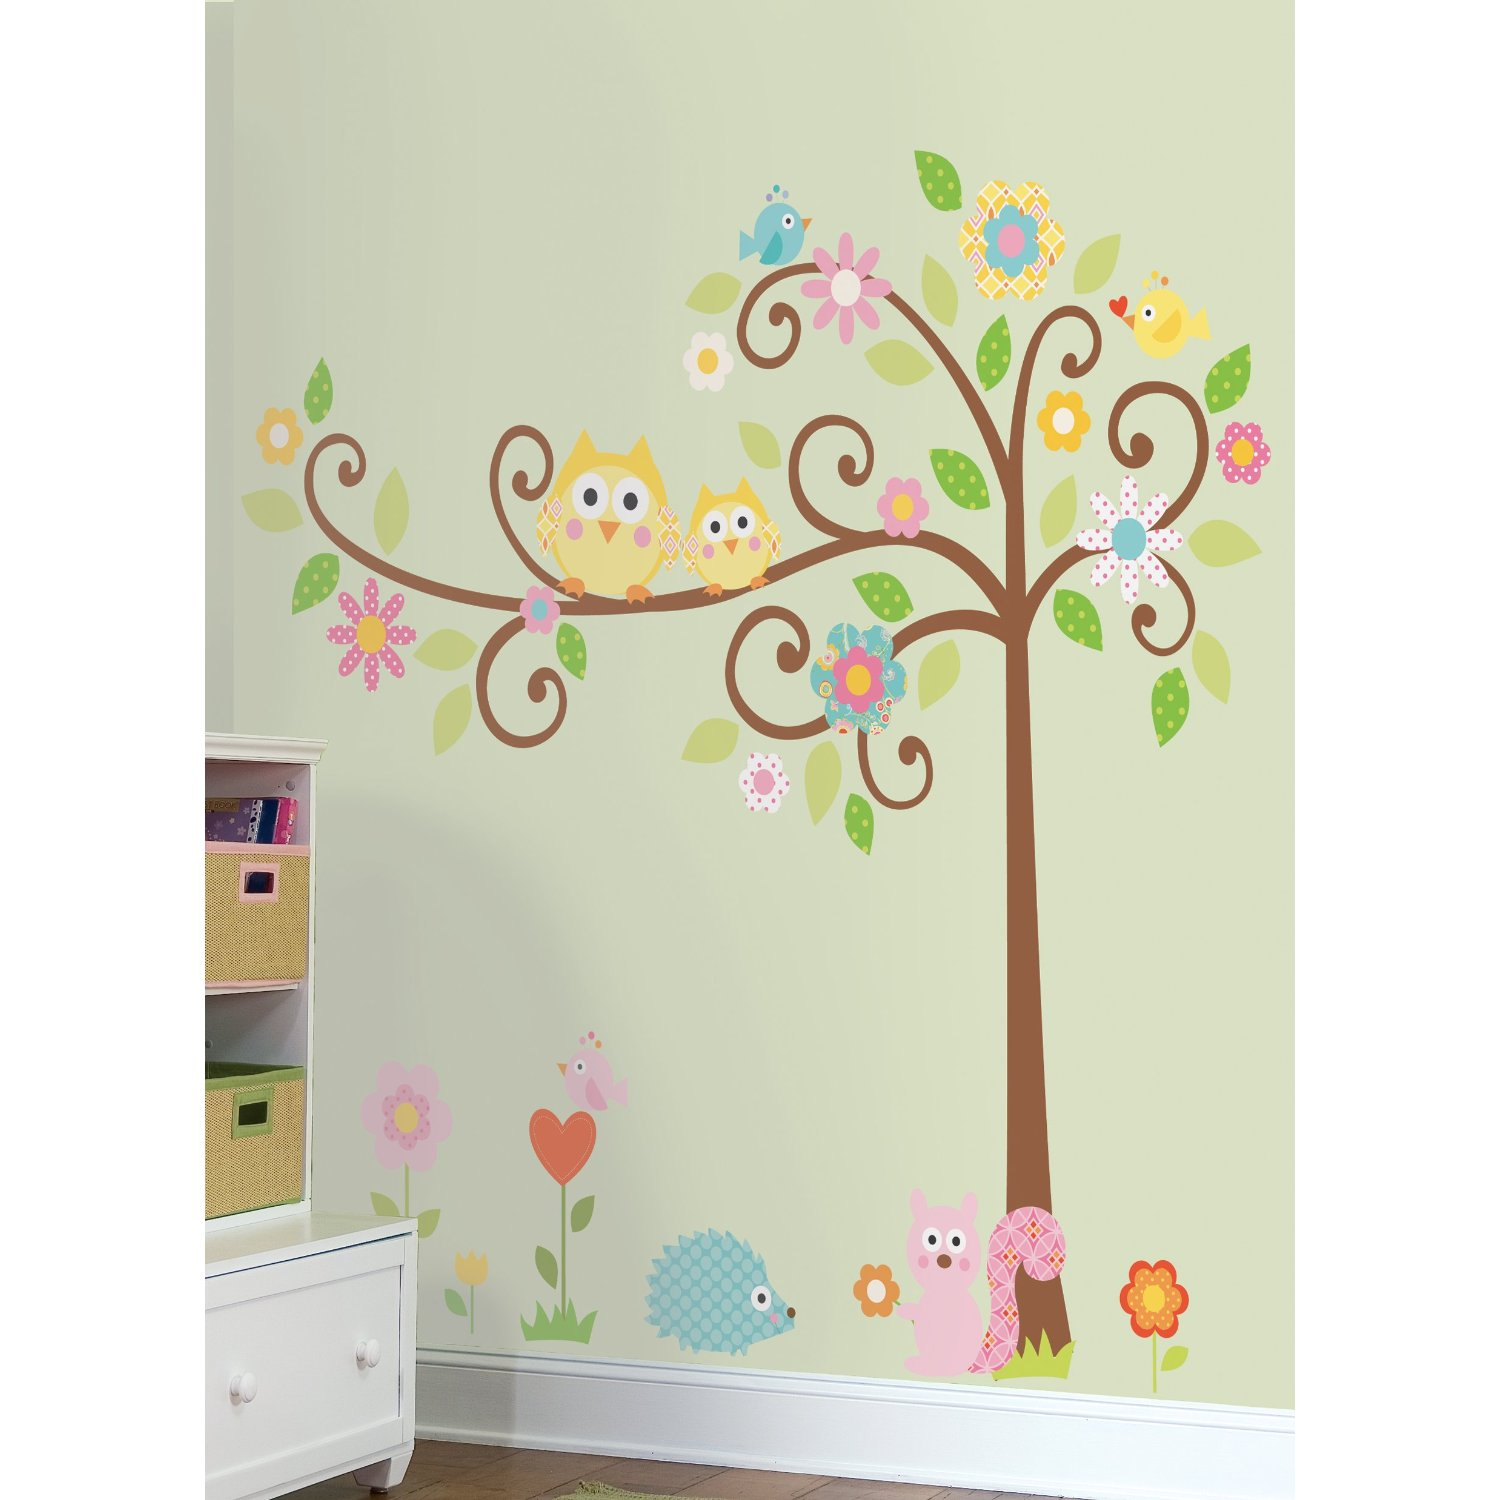 Nursery room ideas nursery wall decals for Baby room wall decoration